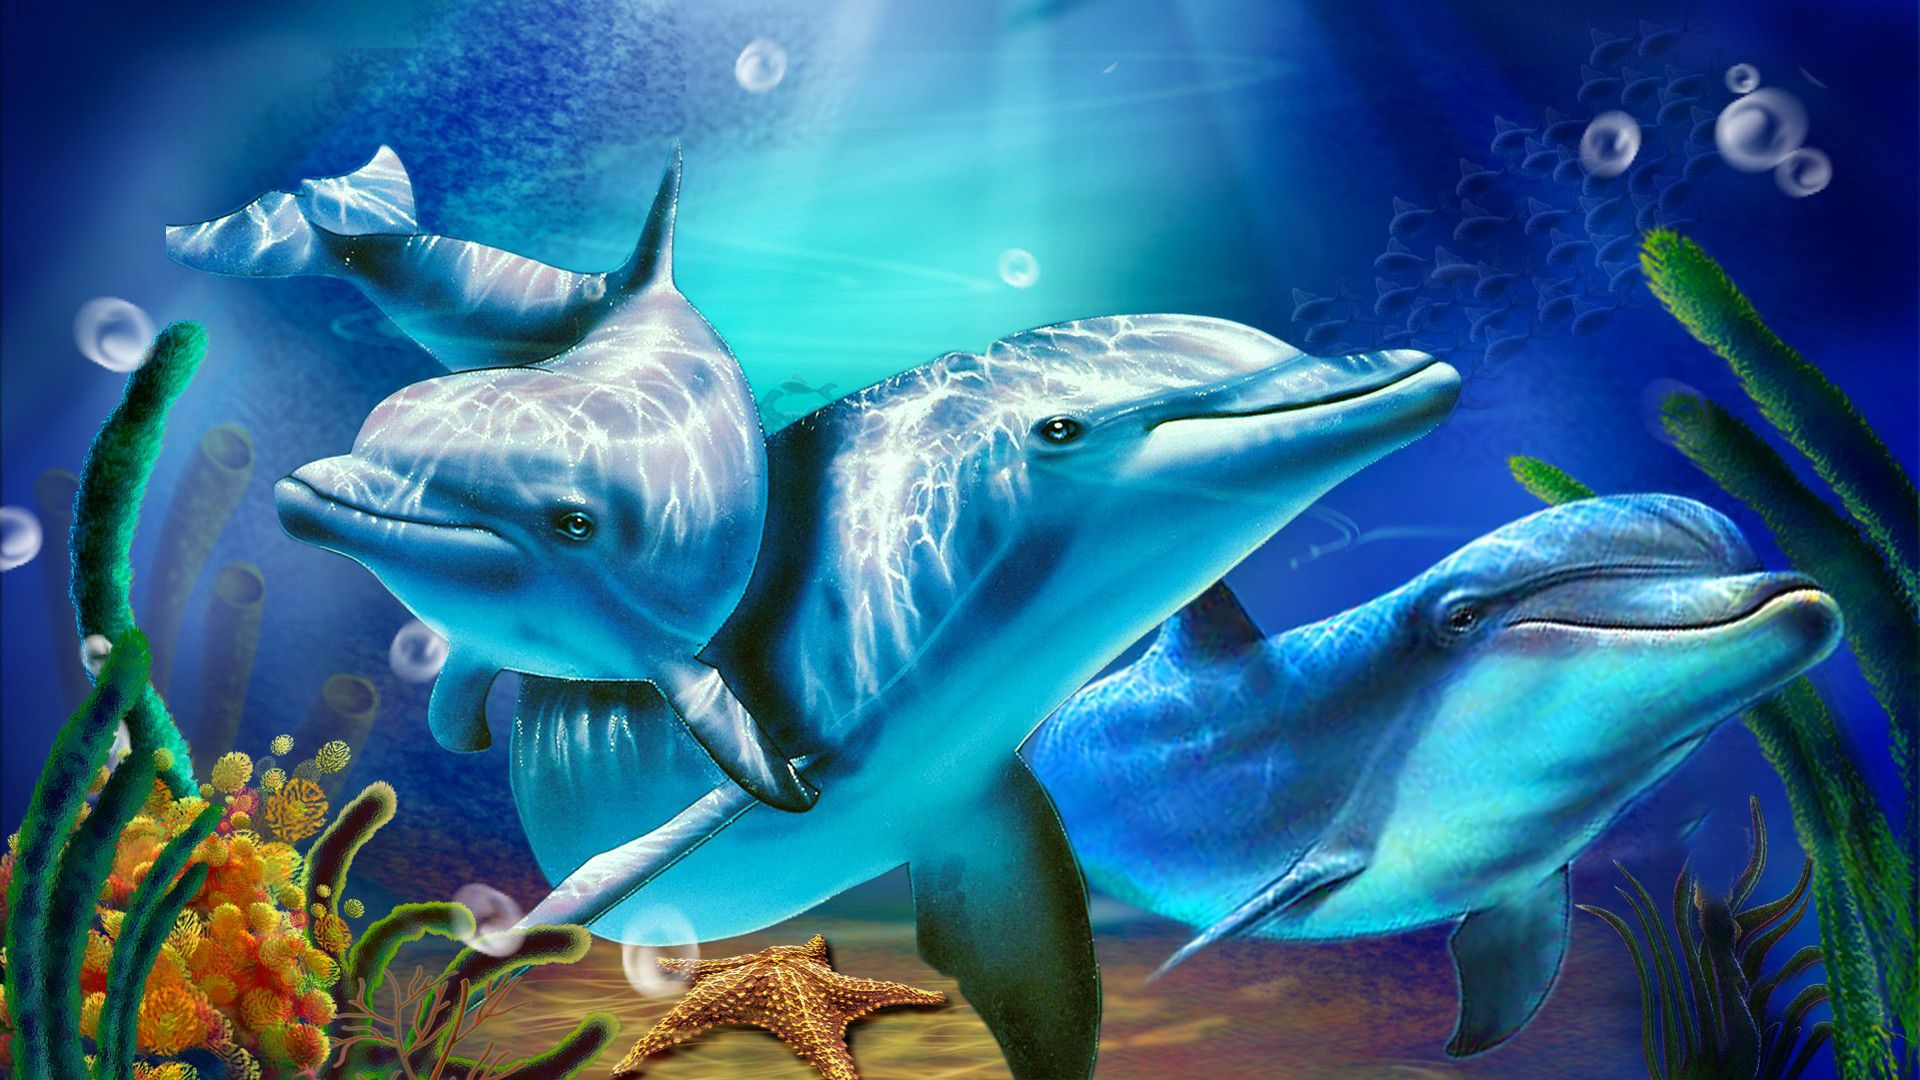 Dolphin Animated Wallpapers Find Best Latest In HD For Your PC Desktop